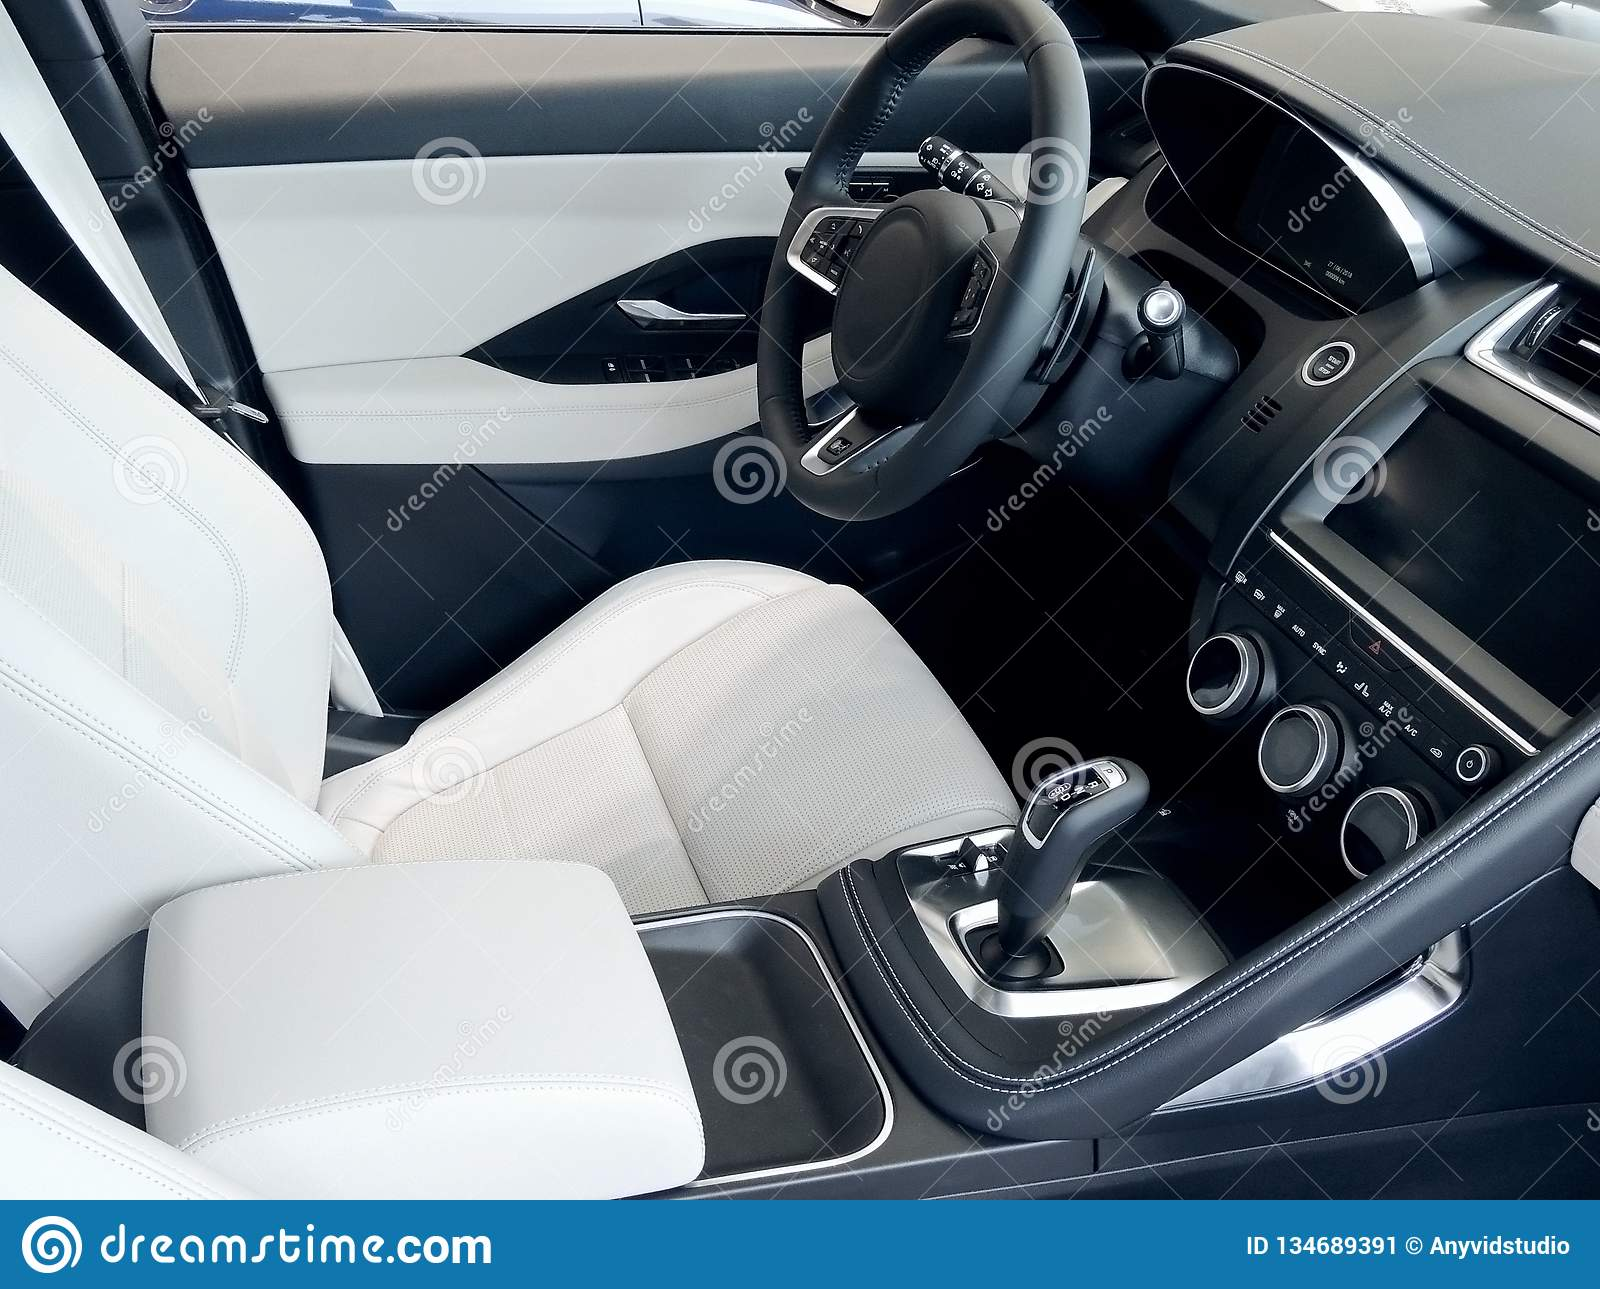 Car Leather Upholstery >> Combination Of Black And White Leather Upholstery In Car